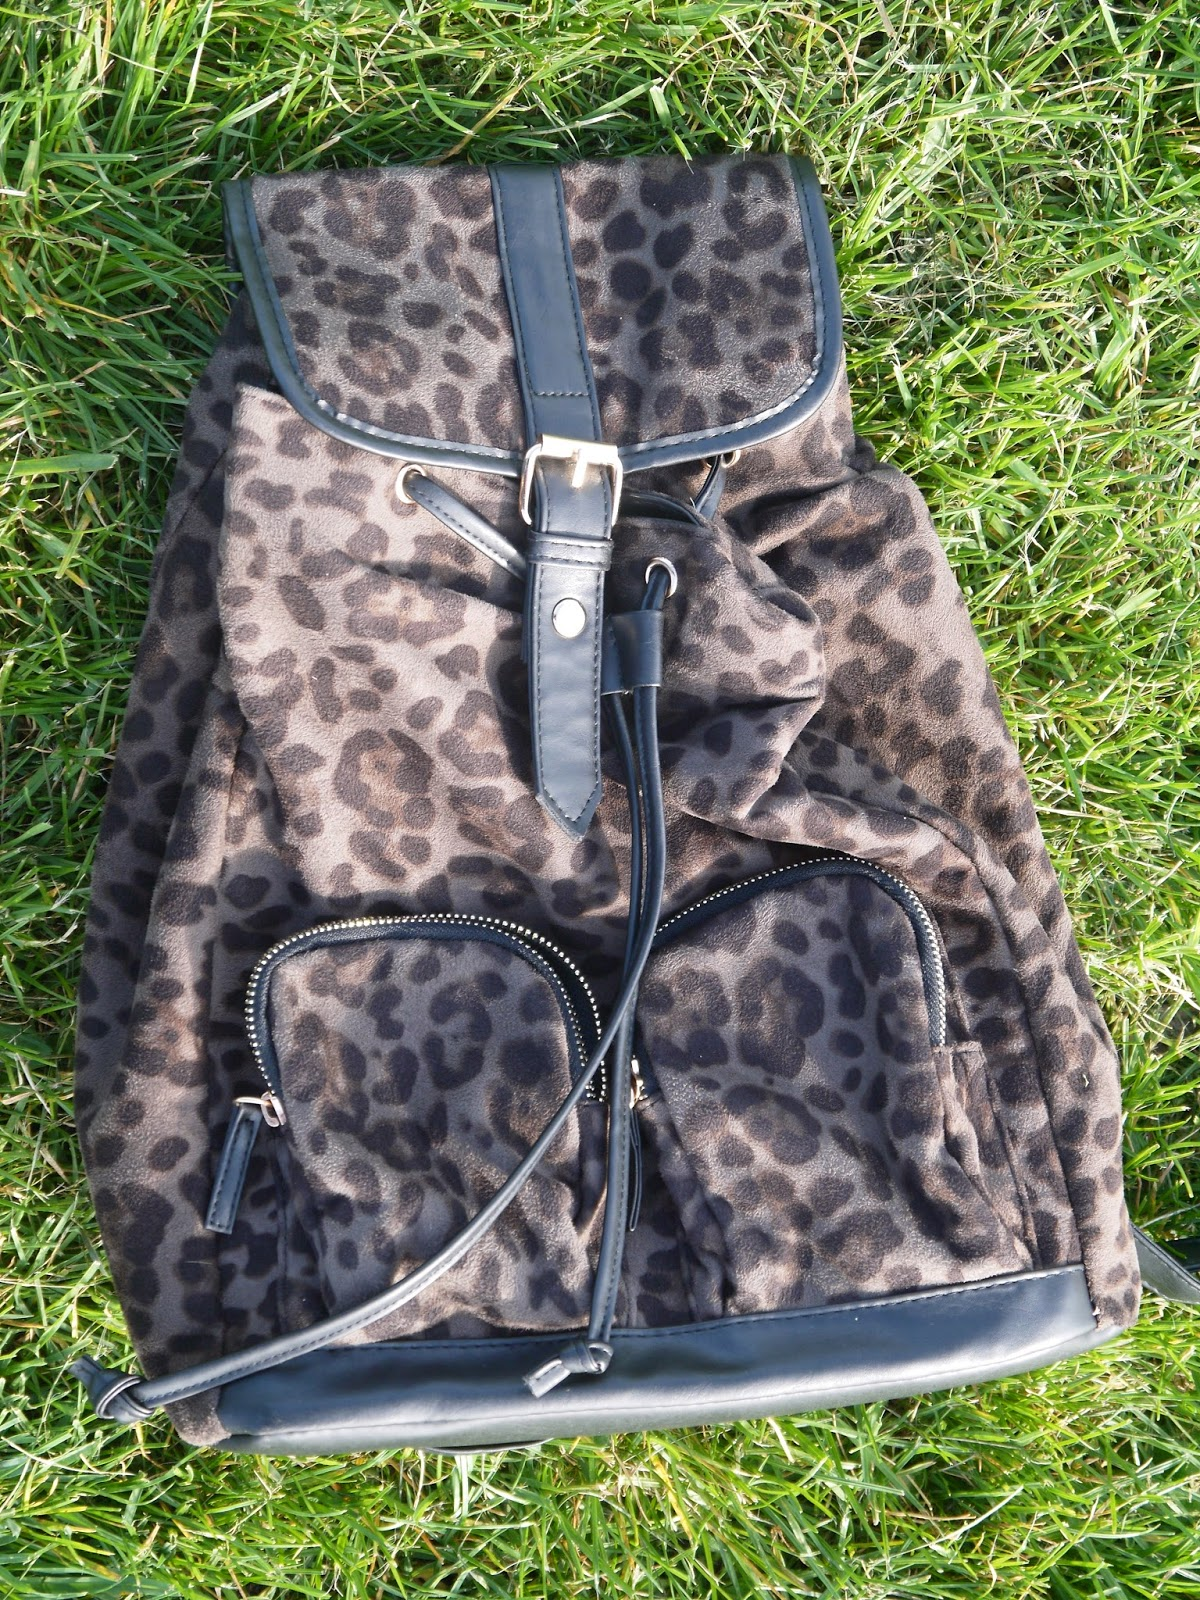 What's in My Bag featuring My Primark Leopard Print Rucksack